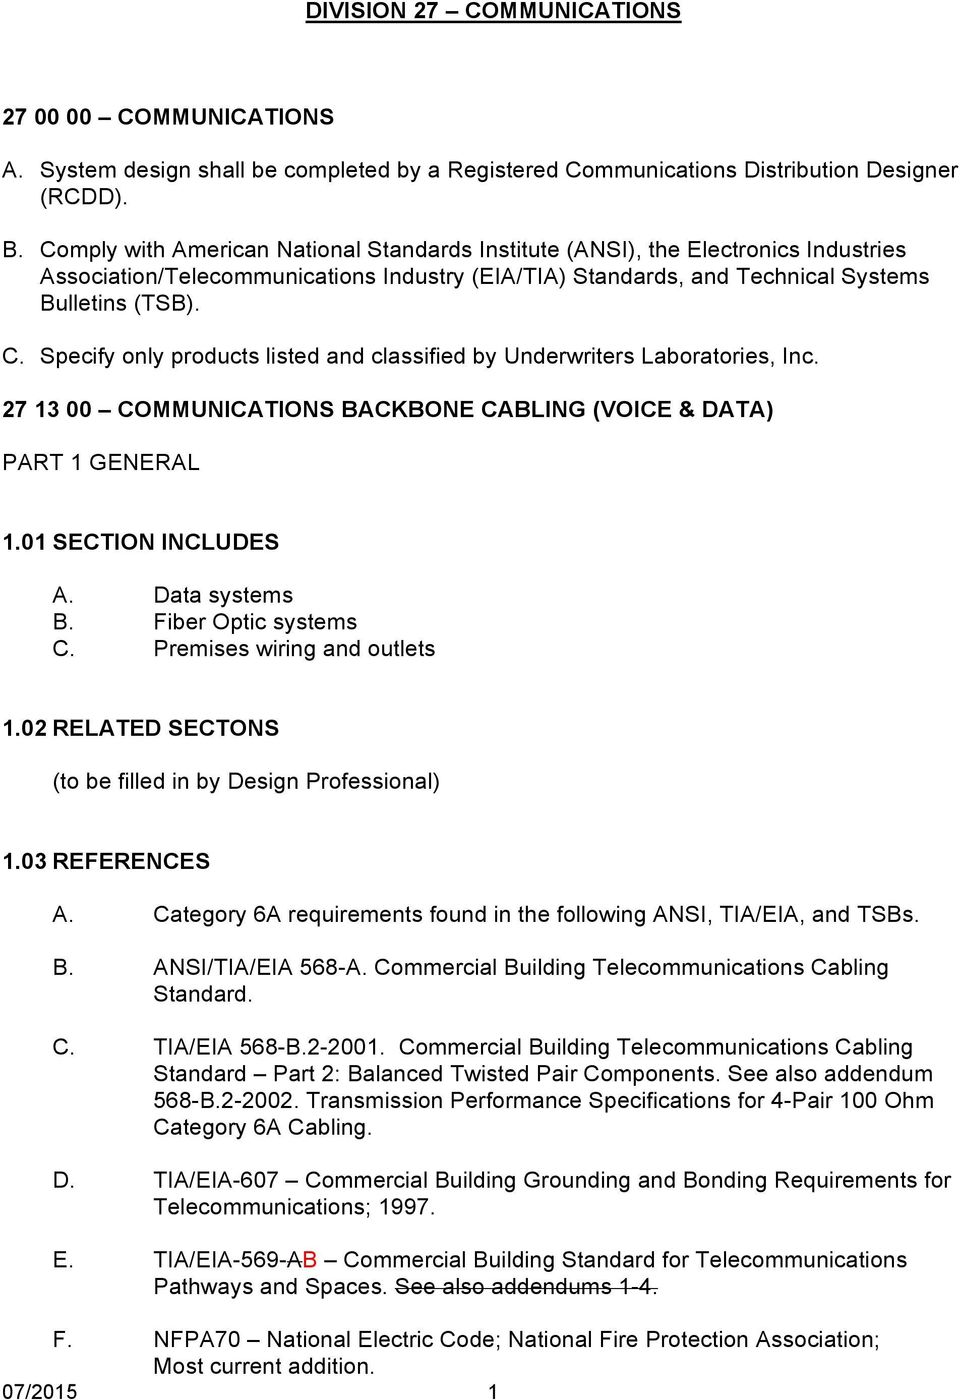 Specify only products listed and classified by Underwriters Laboratories, Inc. 27 13 00 COMMUNICATIONS BACKBONE CABLING (VOICE & DATA) PART 1 GENERAL 1.01 SECTION INCLUDES A. Data systems B.